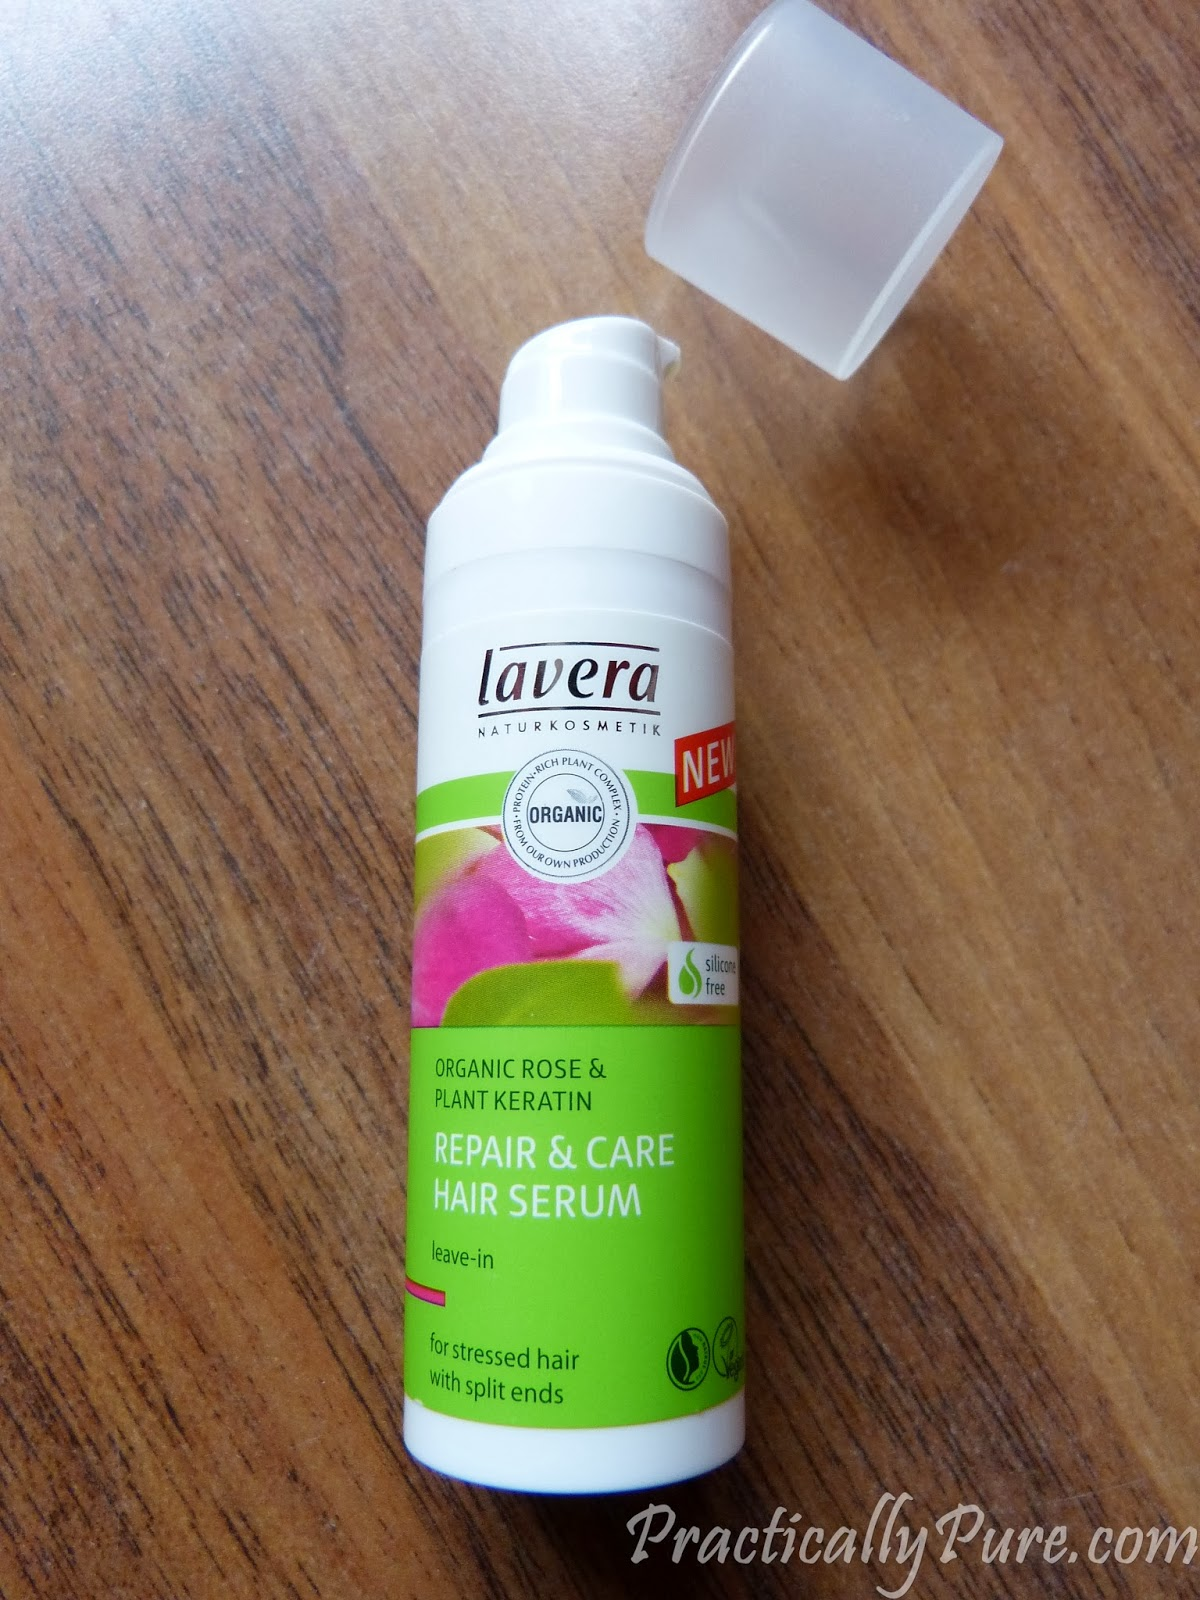 Lavera repair and care hair serum